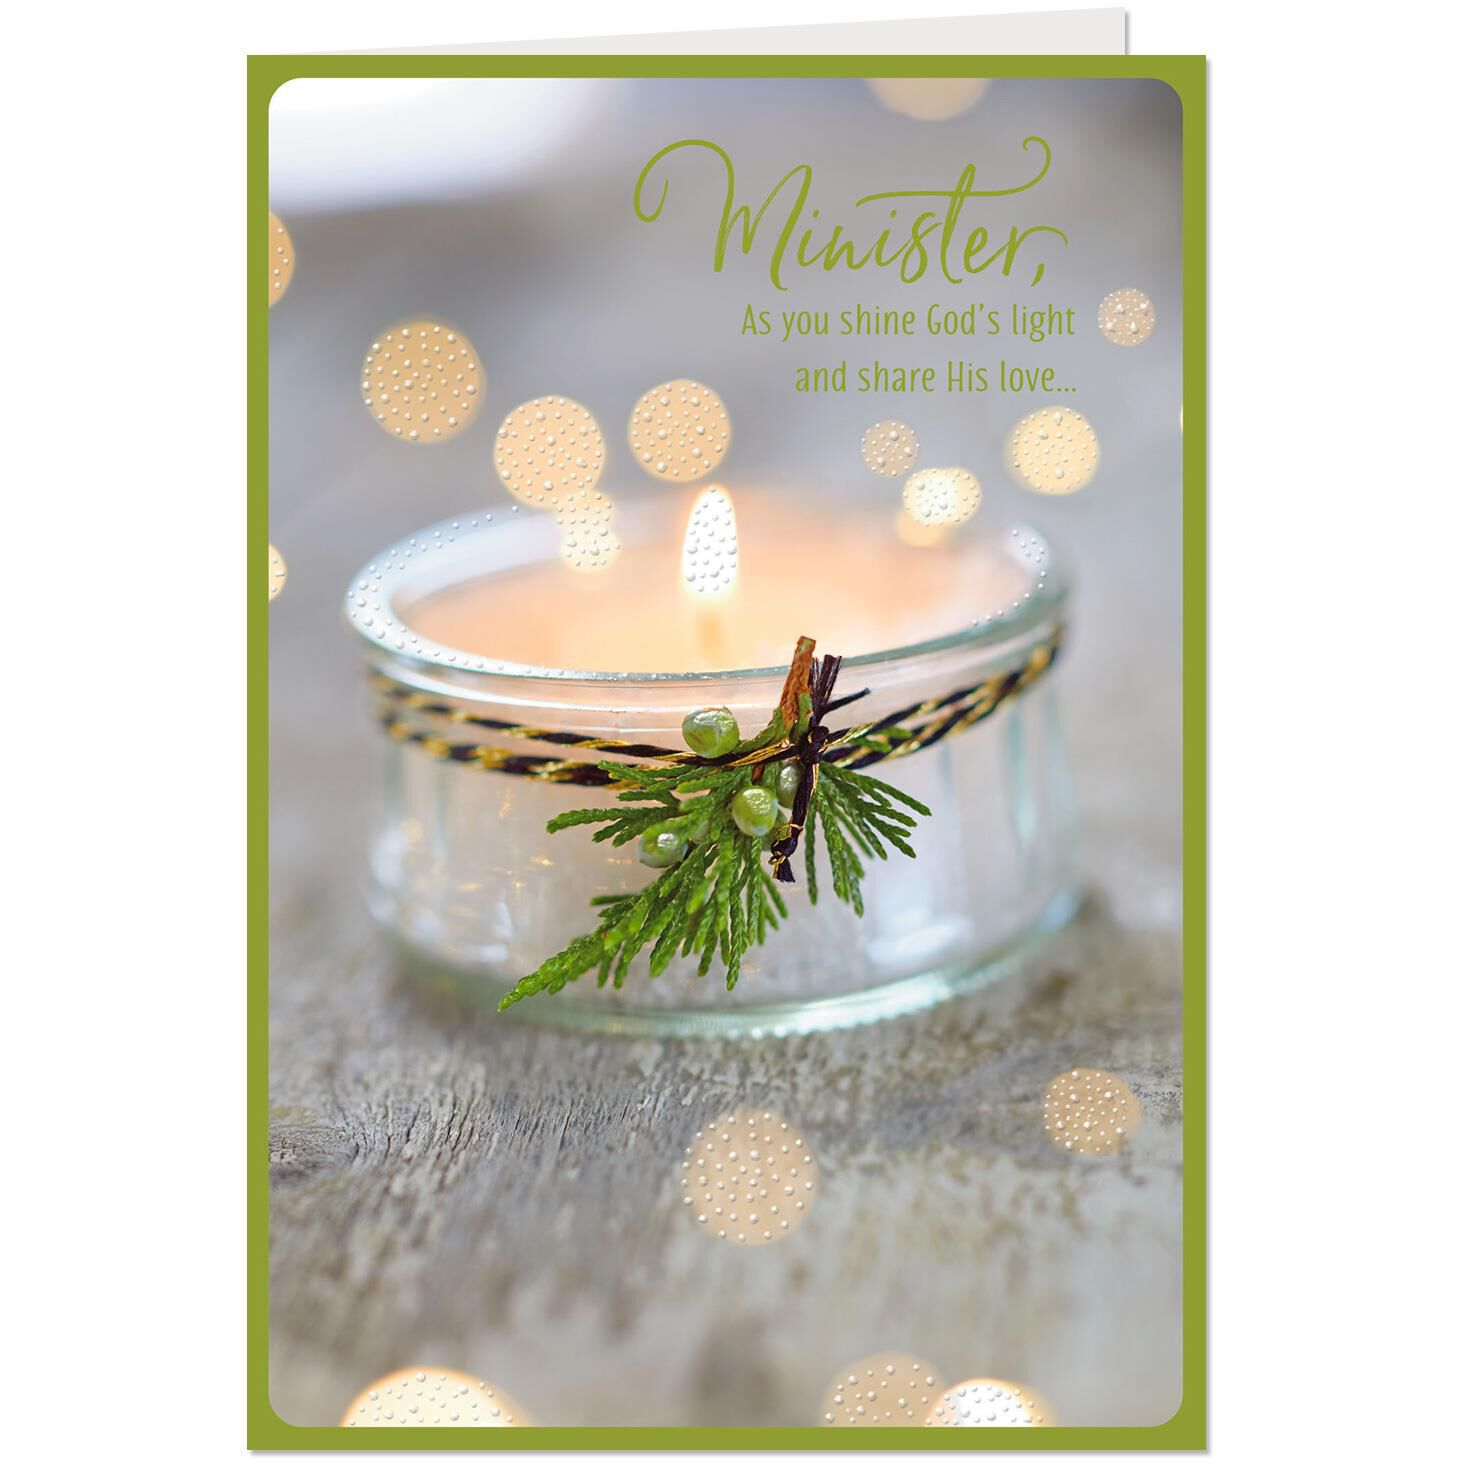 Religious Christmas.Your Faithful Example Glowing Candle Religious Christmas Card For Minister